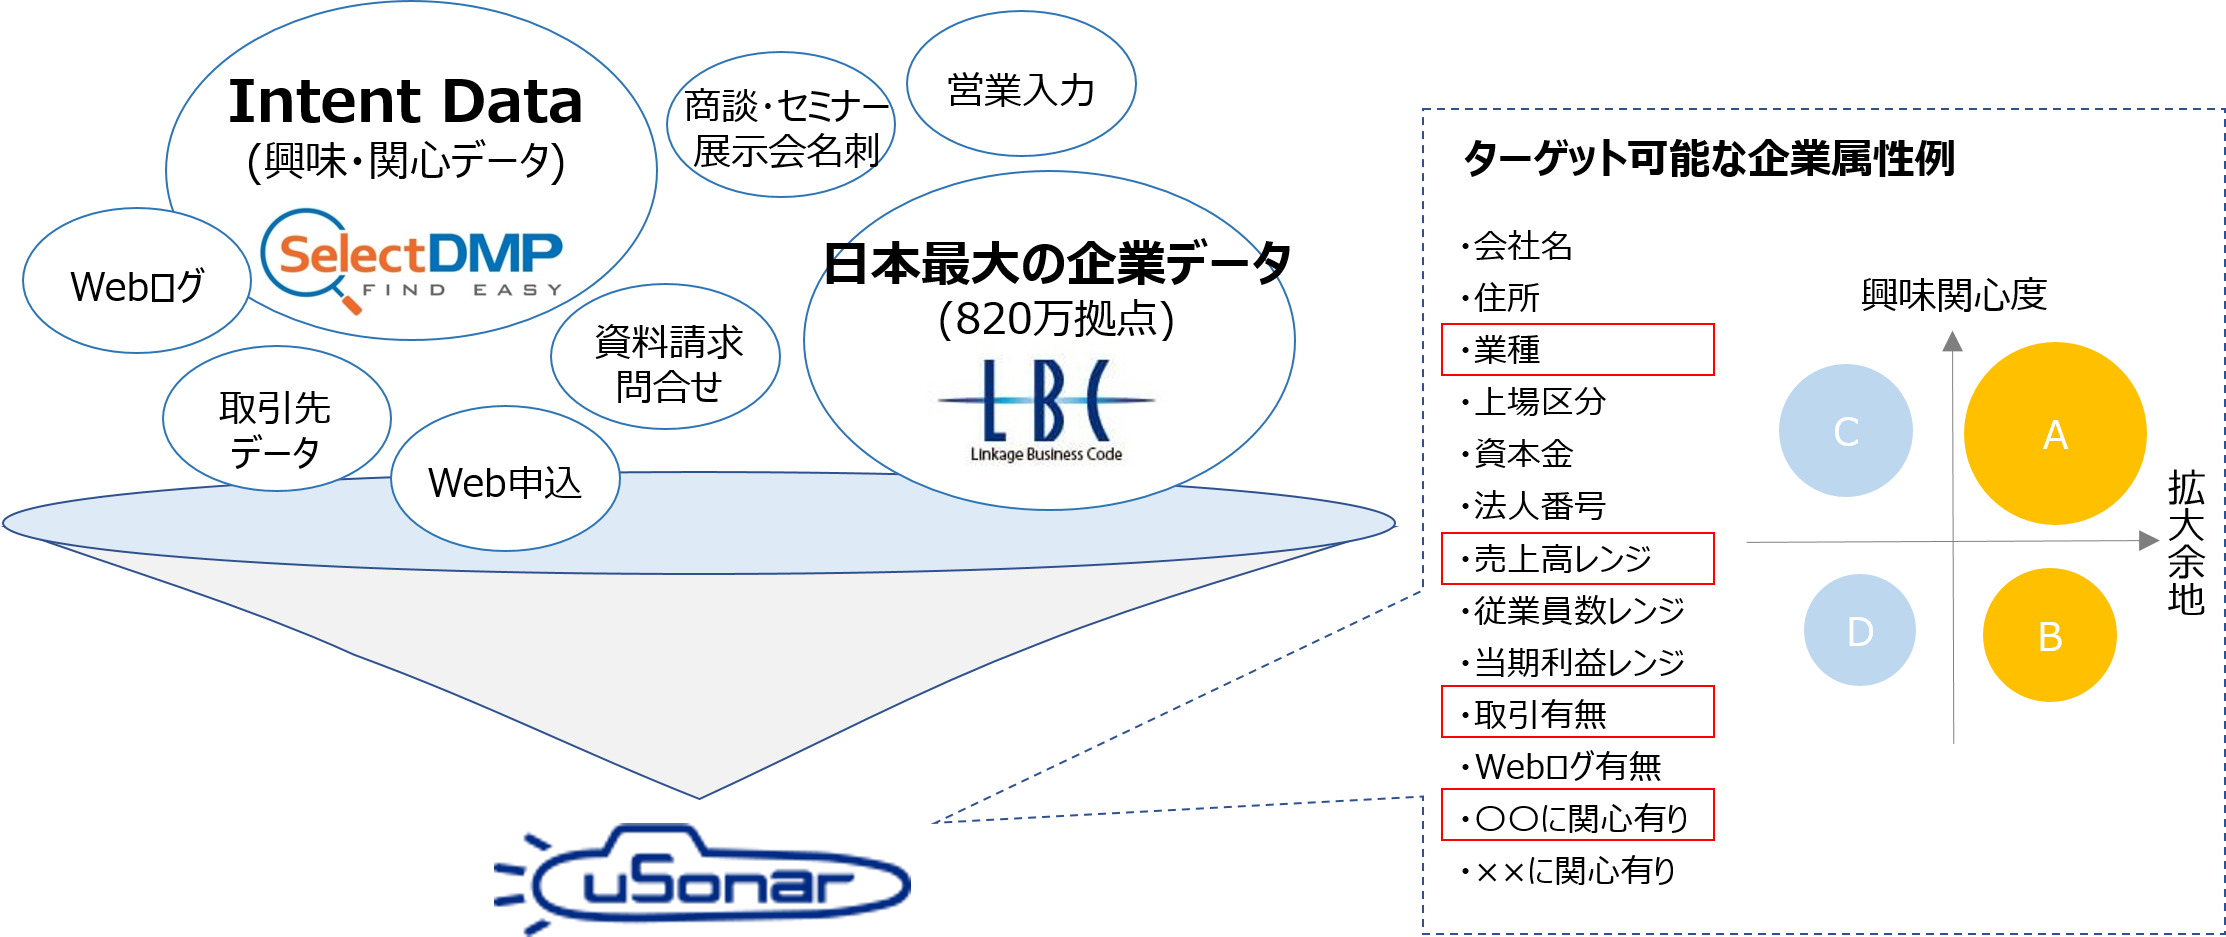 20190222_IM②.png